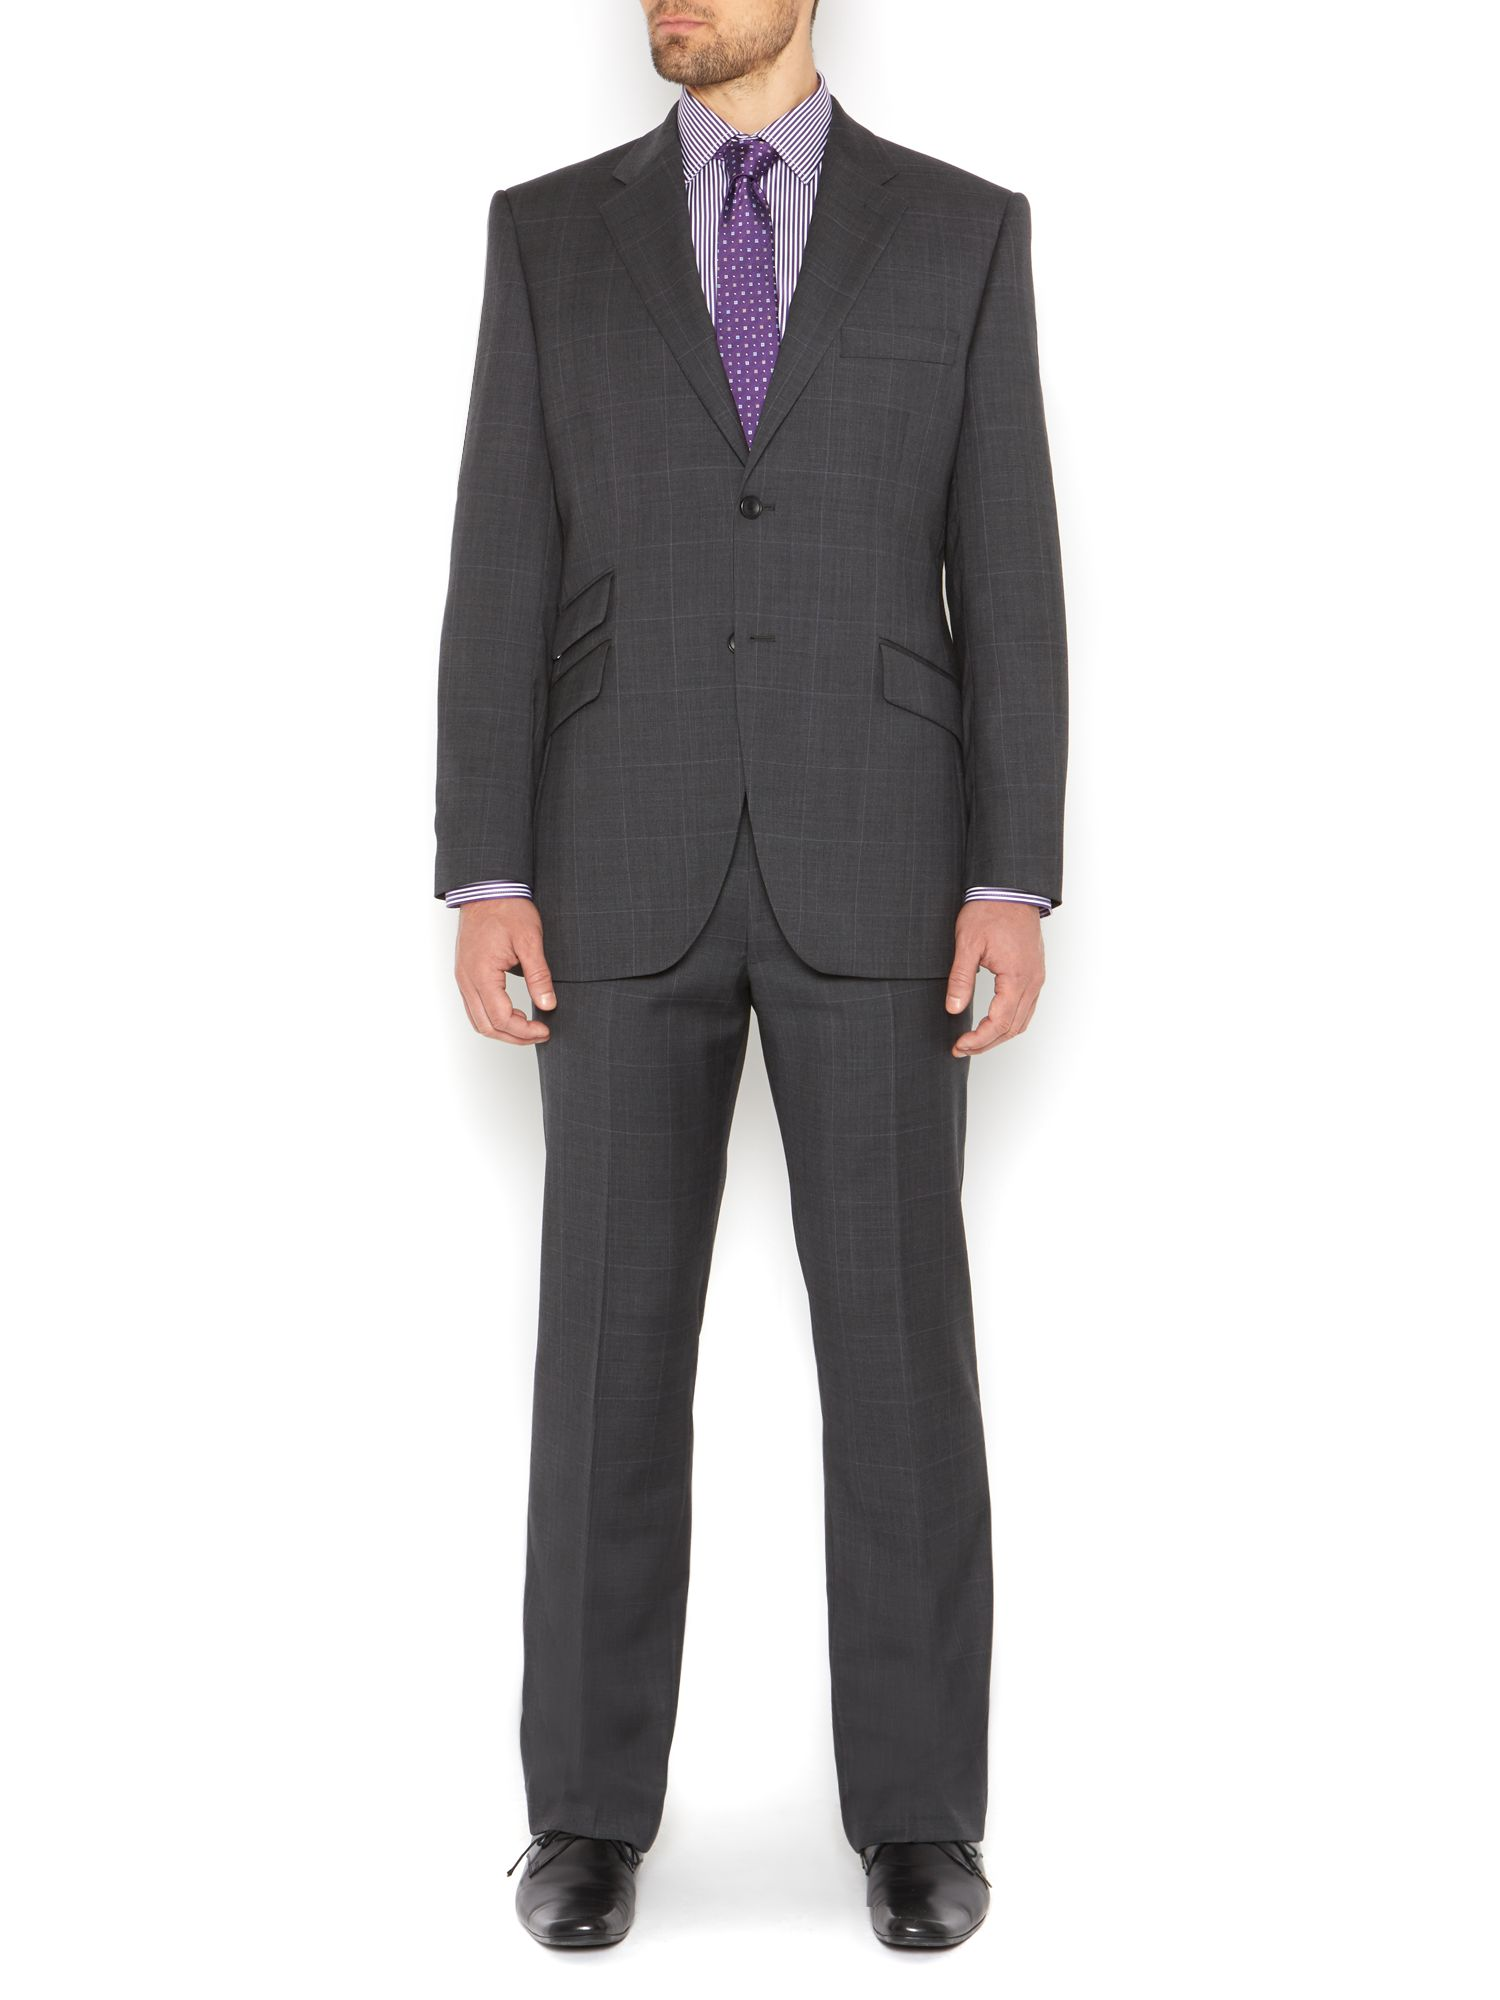 Franklin Prince of Wales Check Suit Jacket